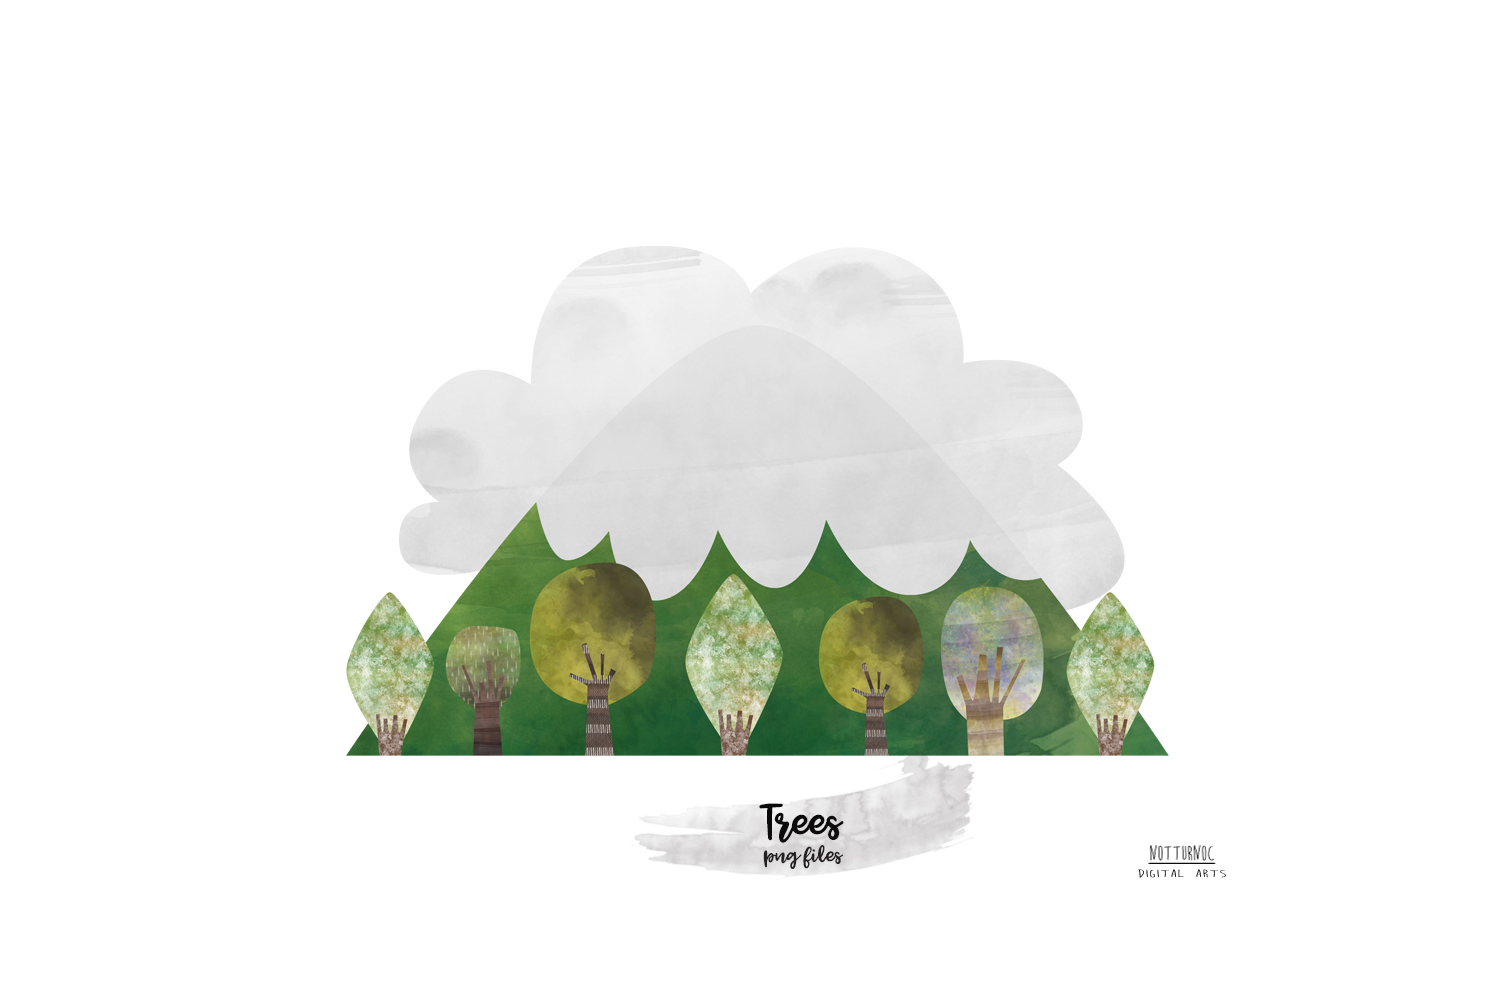 Watercolor Mountain Tree clipart. Mountain and tree clipart example image 5